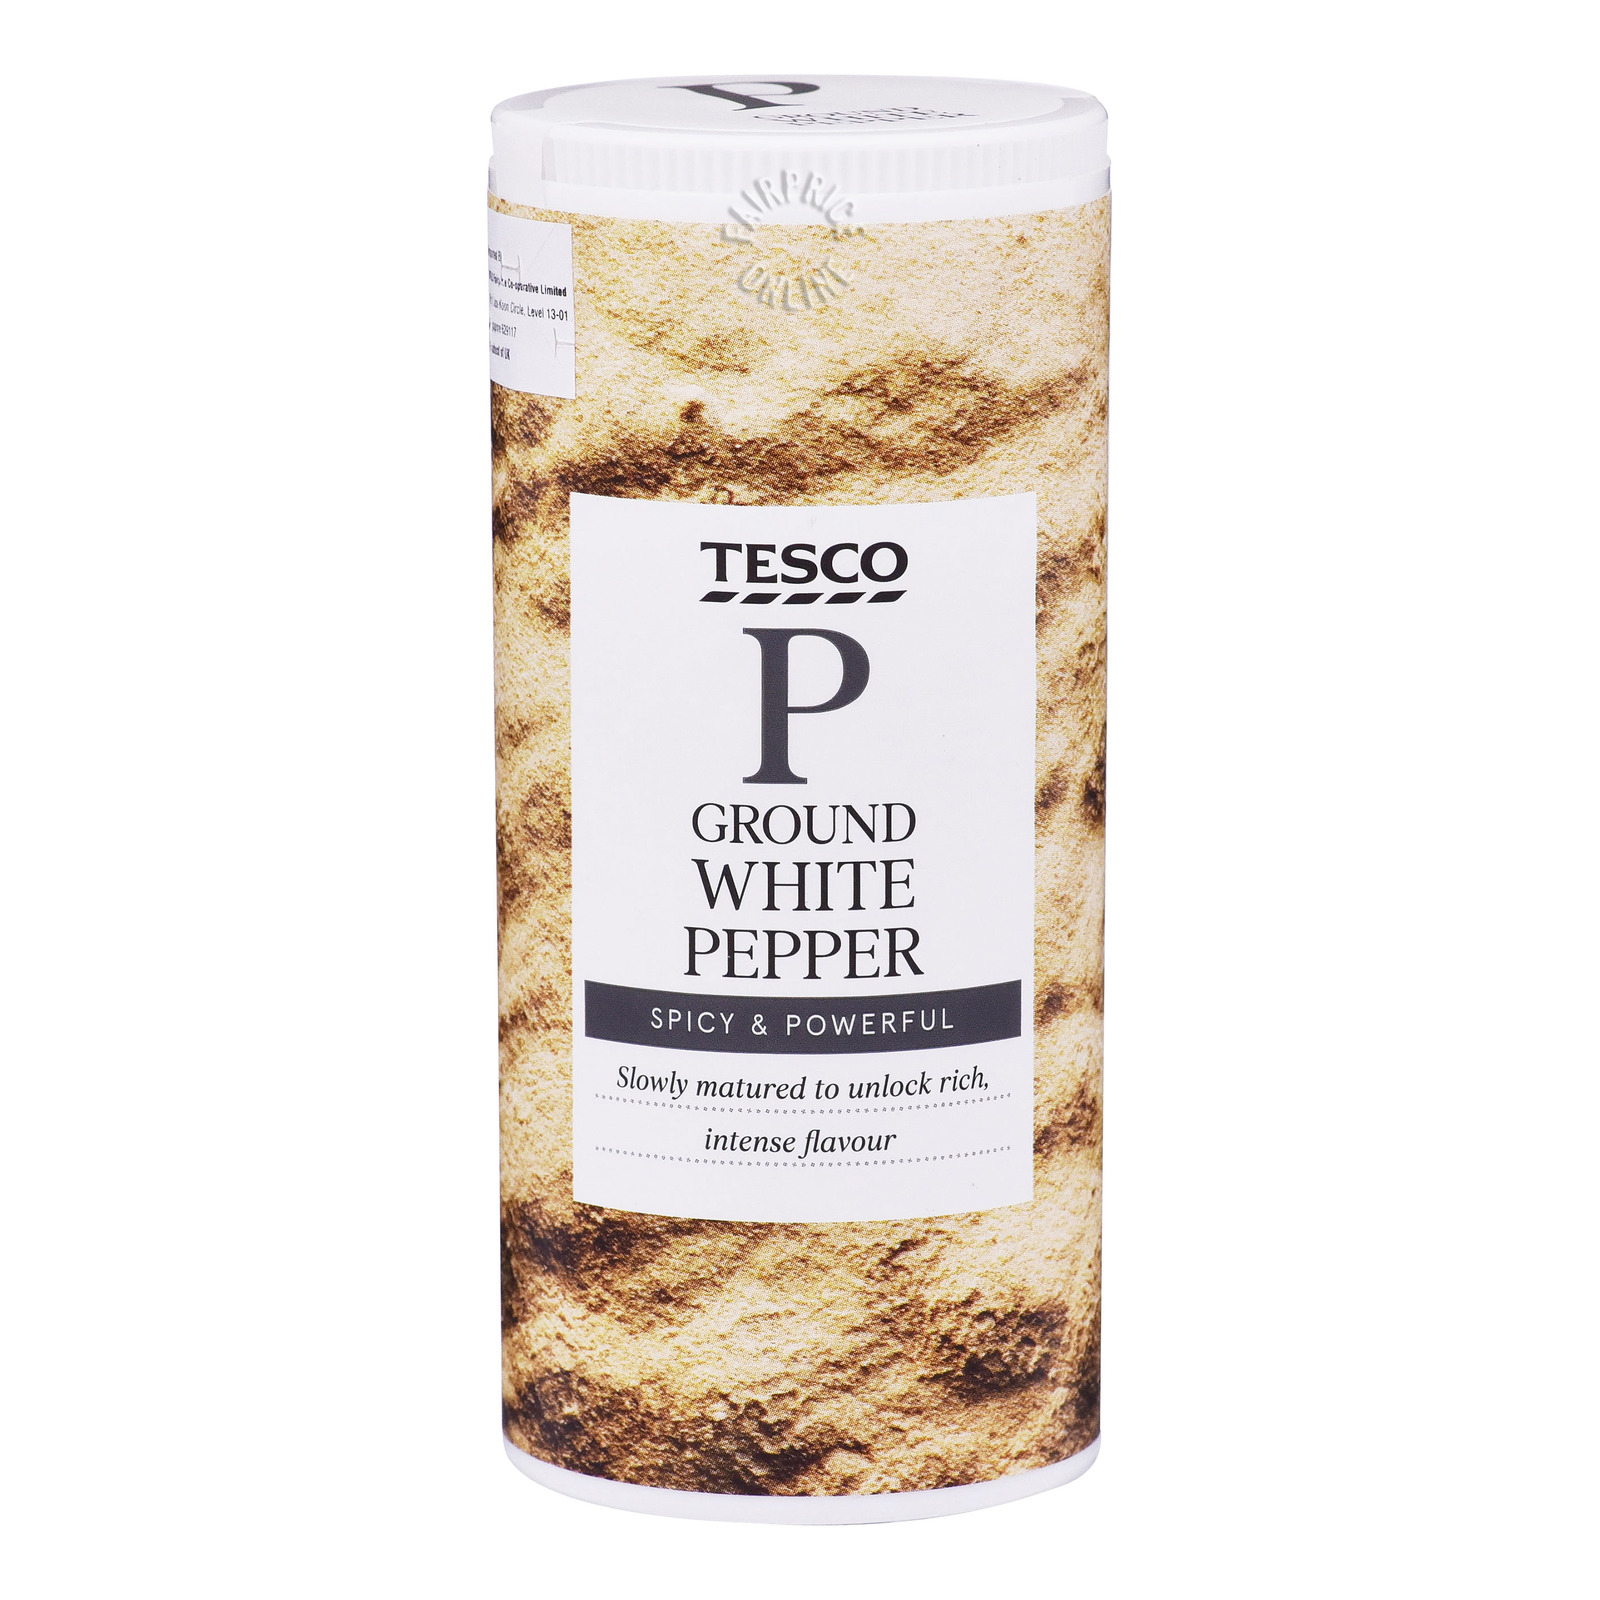 Tesco Ground Pepper - White